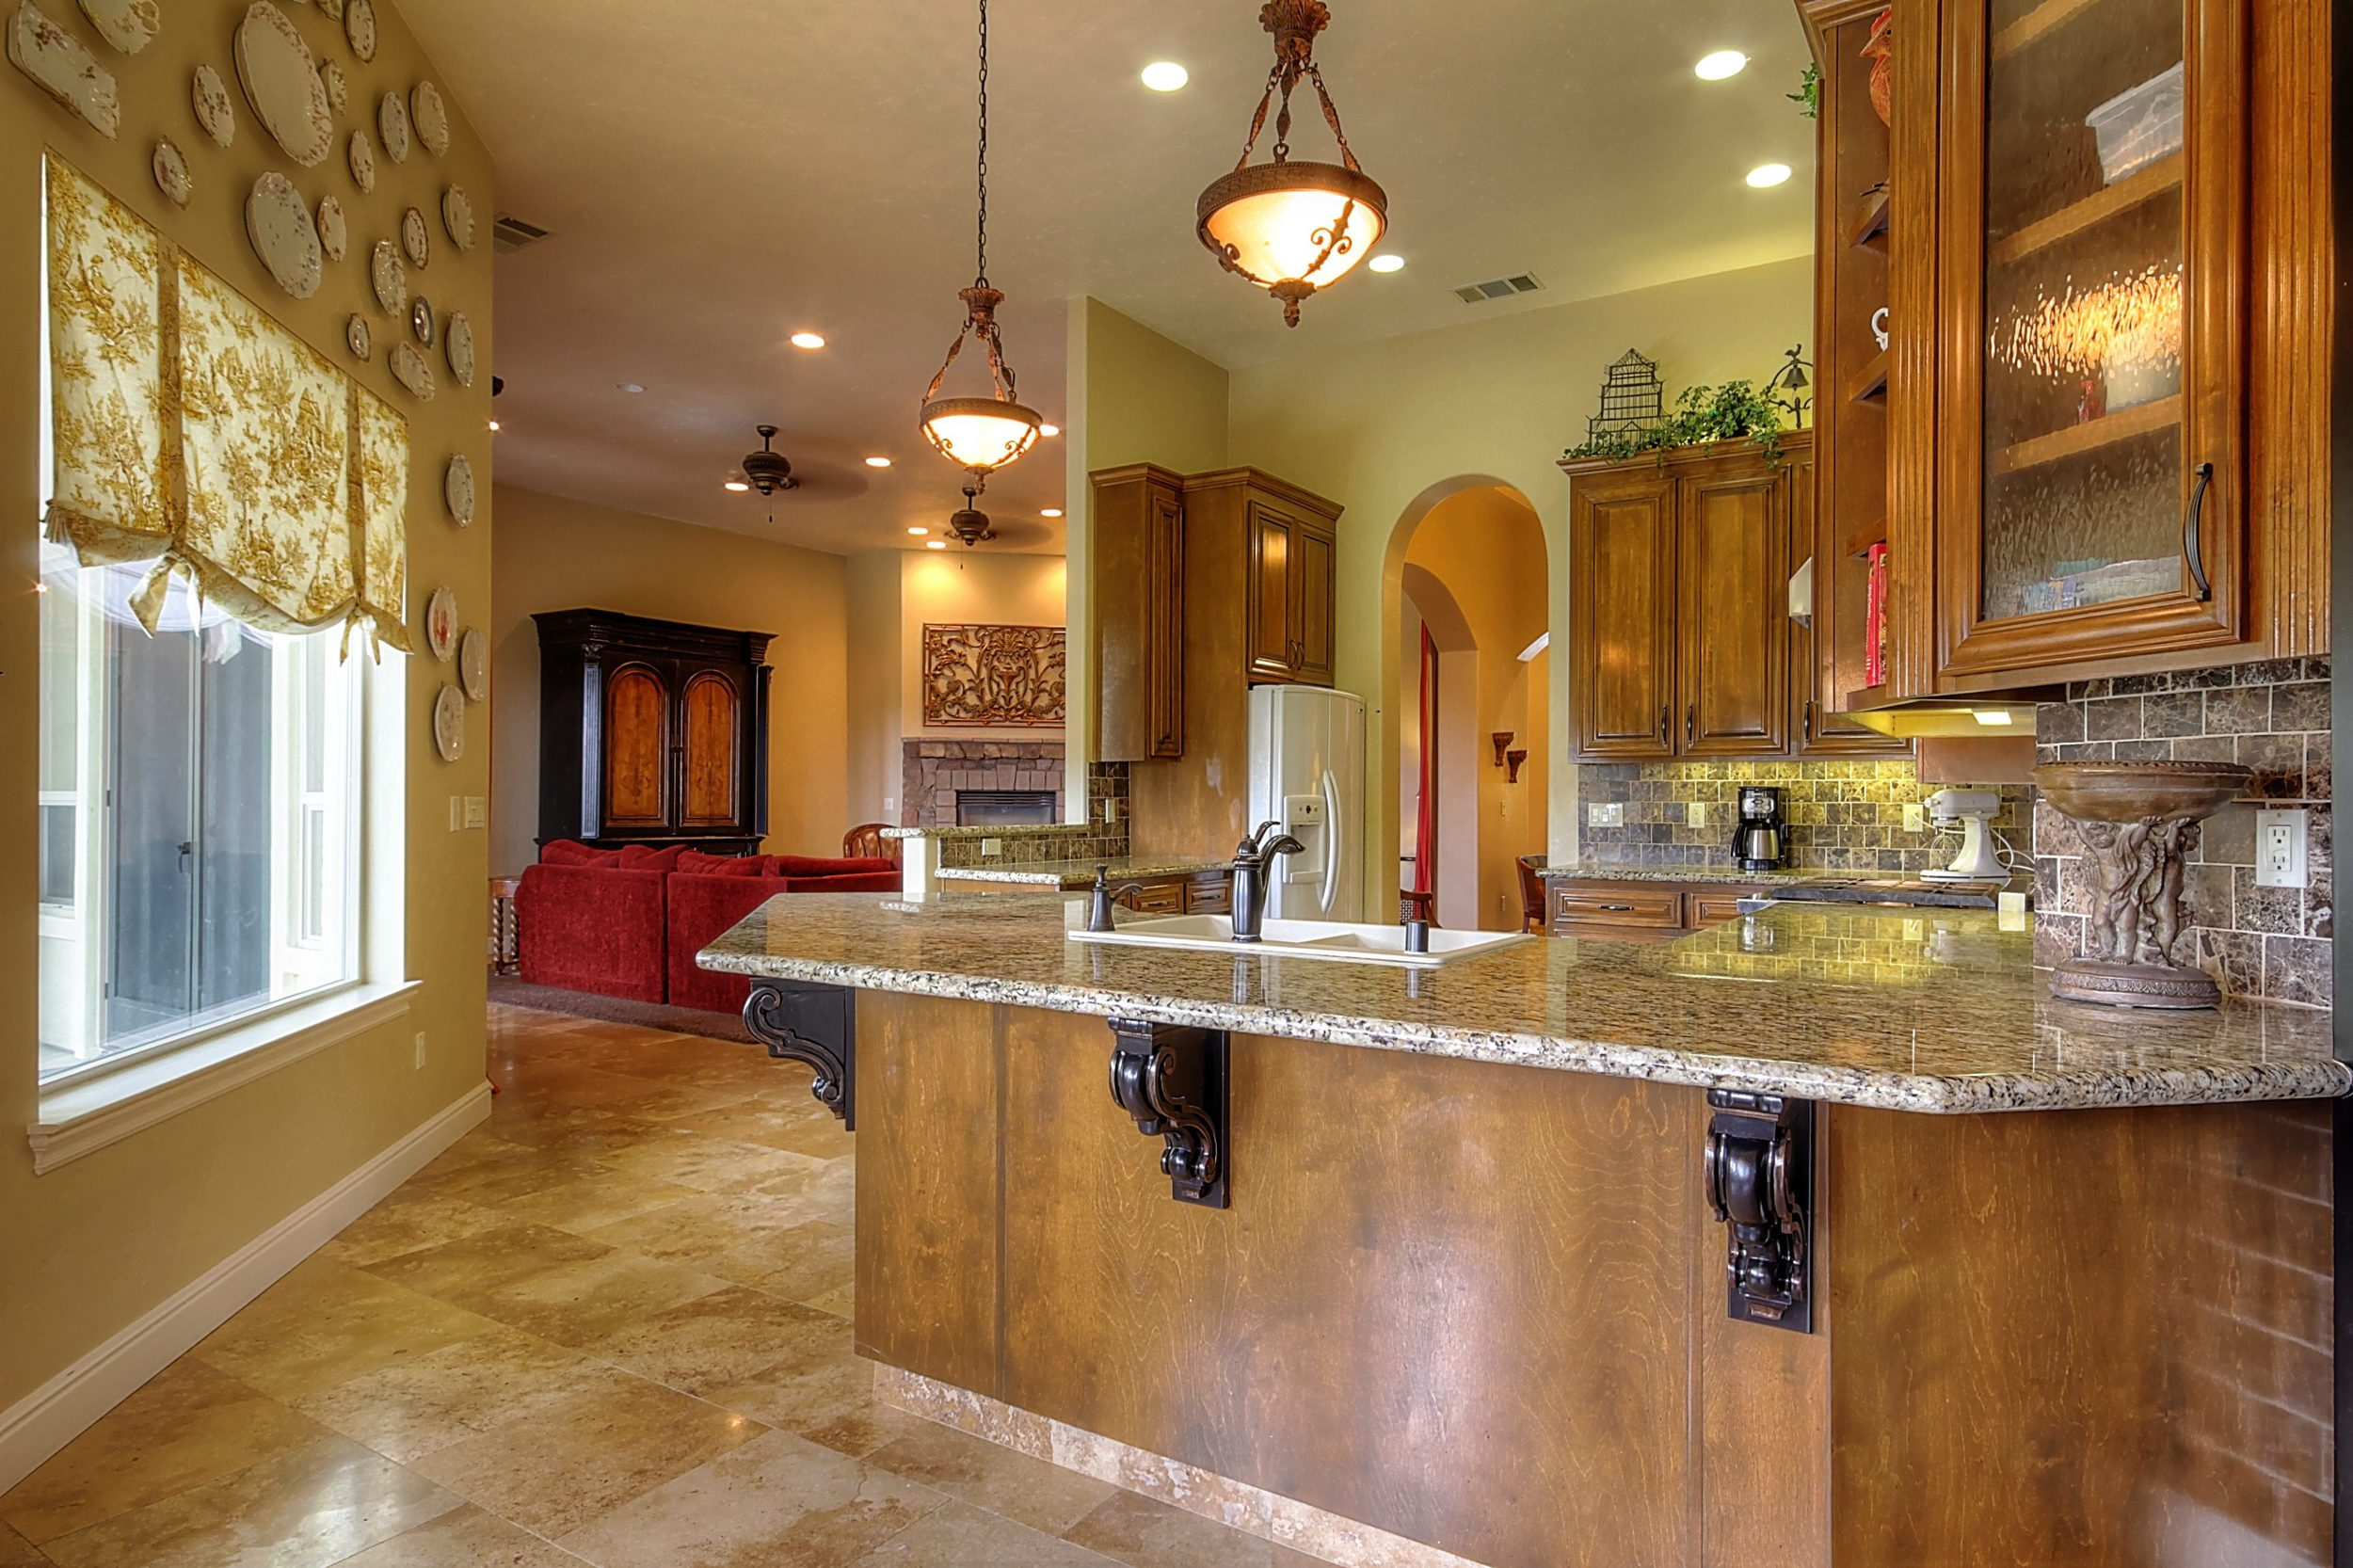 786 7th St Ripon CA 95366 USA-print-016-KitchenBreakfast Bar-3455x2303-300dpi.jpg